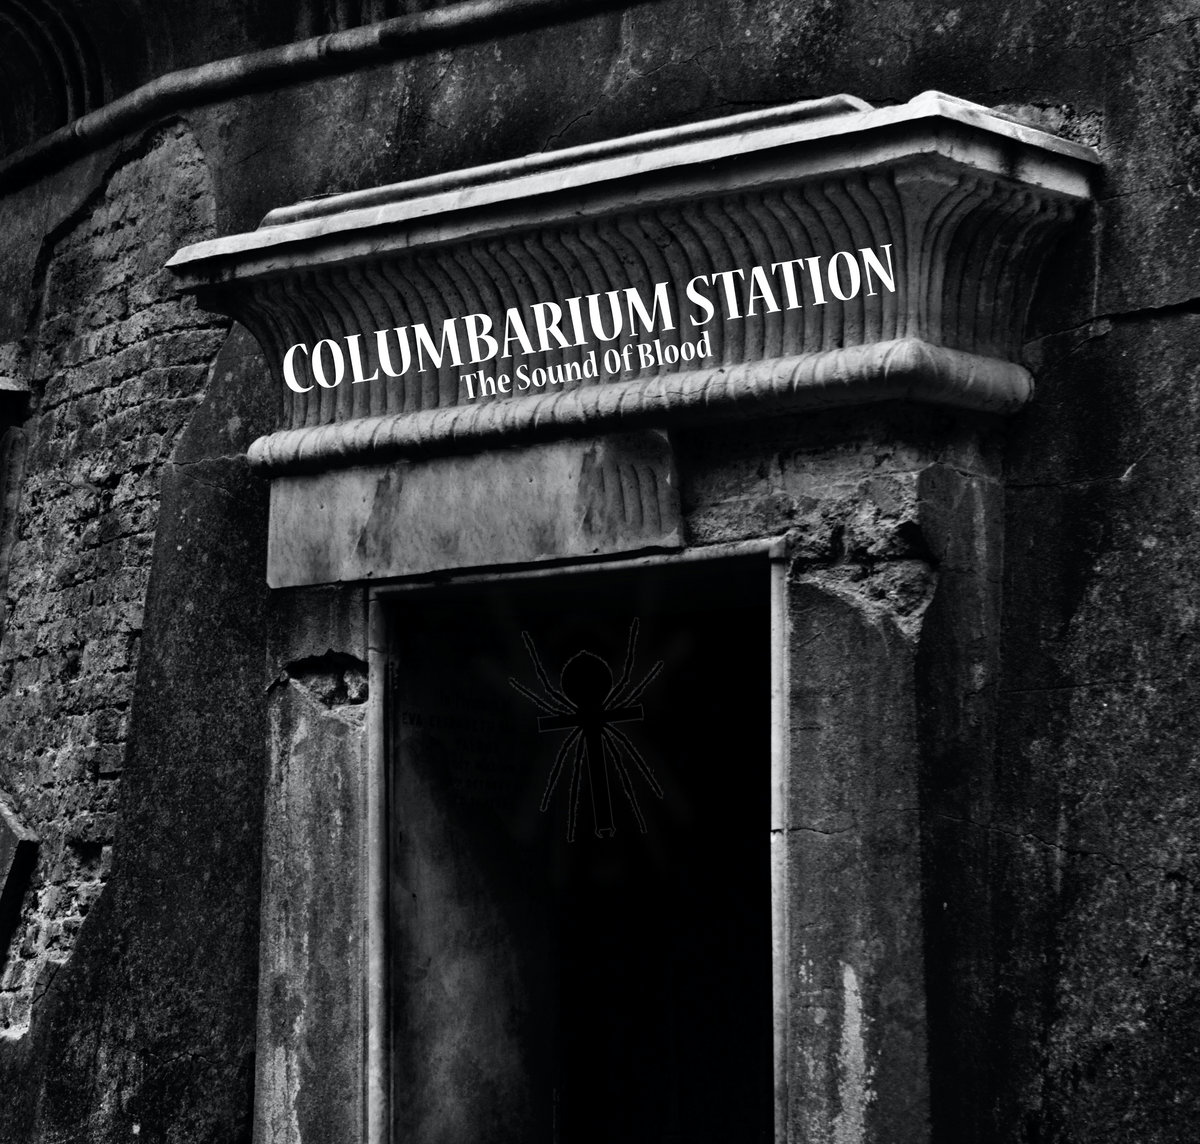 Columbarium station cover